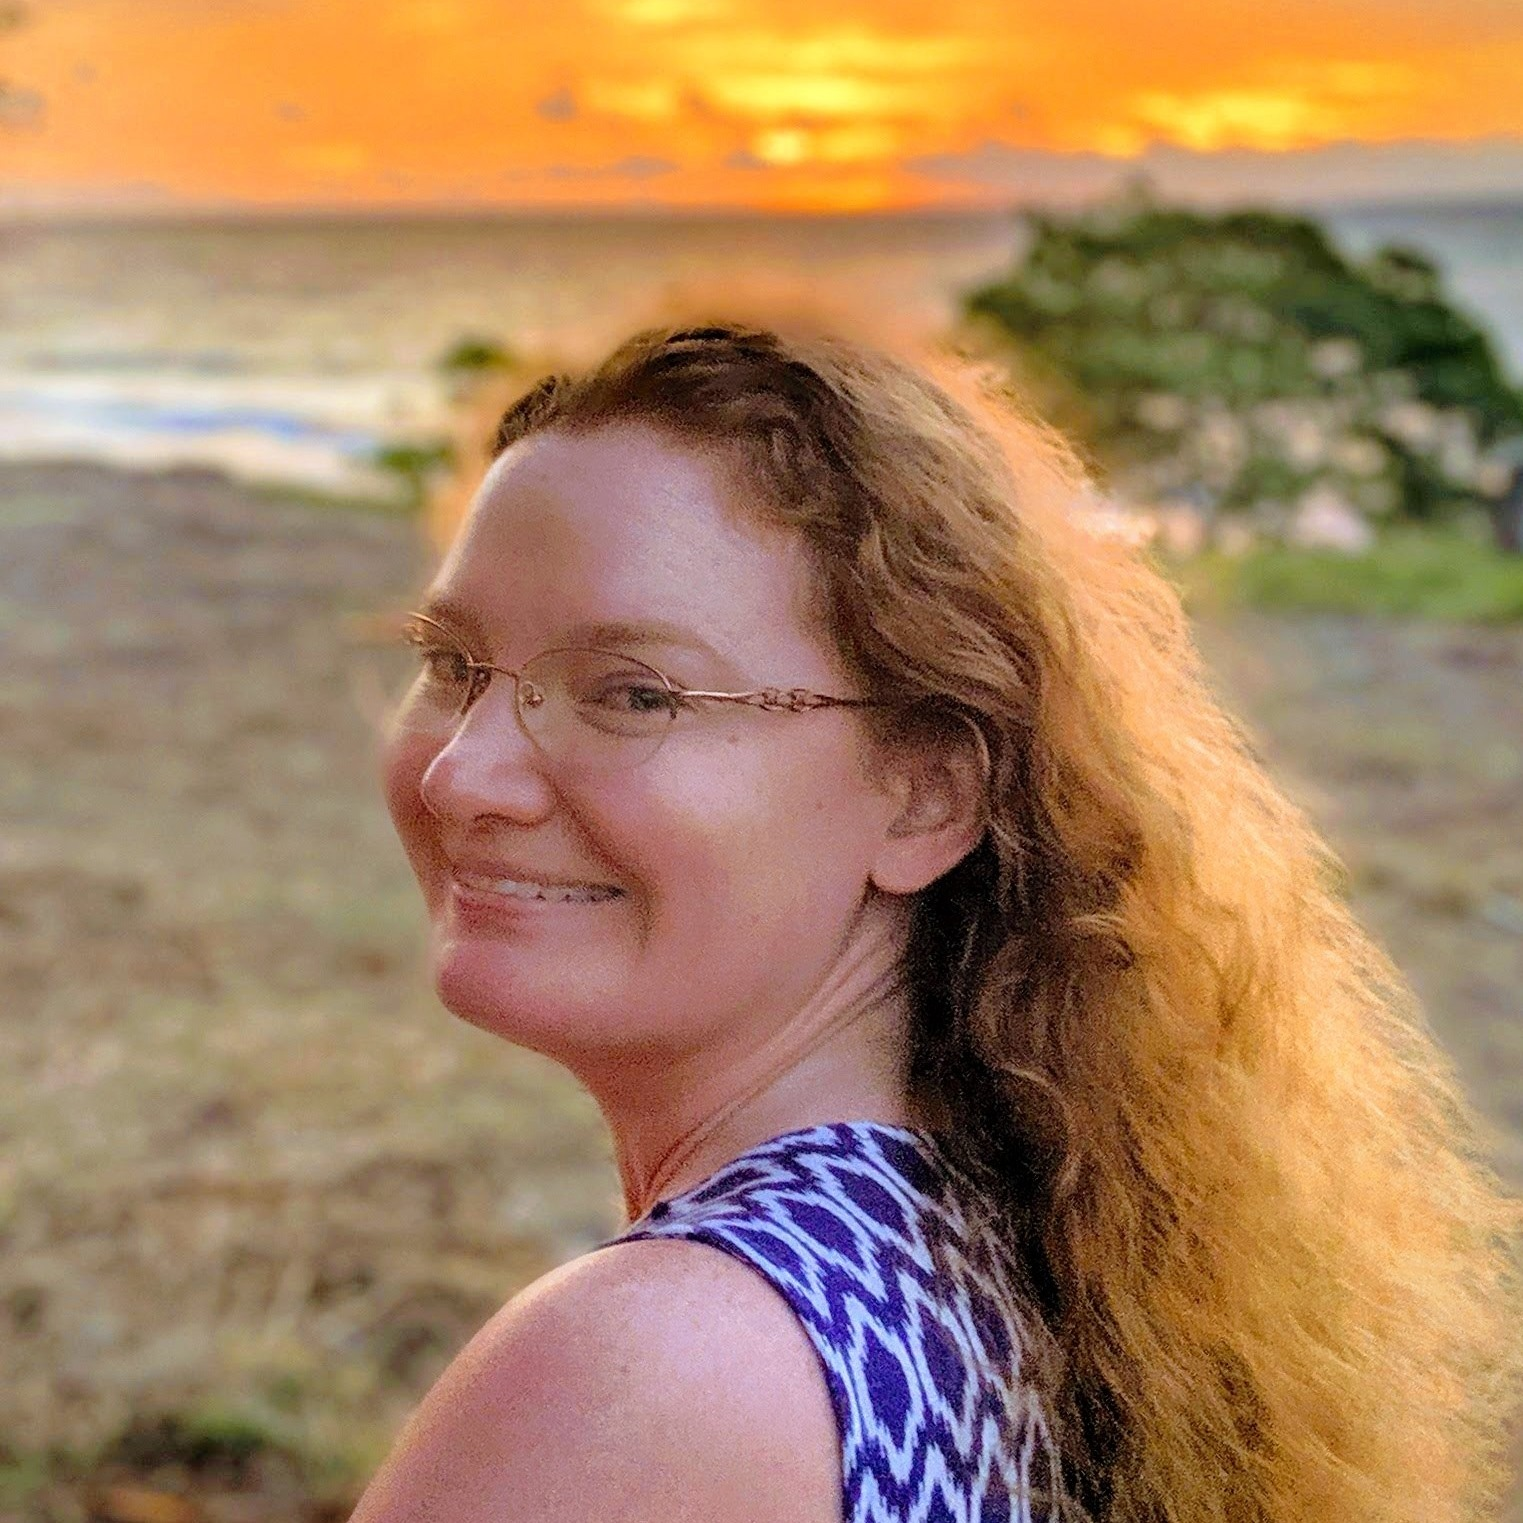 Photo of a red haired woman with glasses on a beach with sunrise in the background